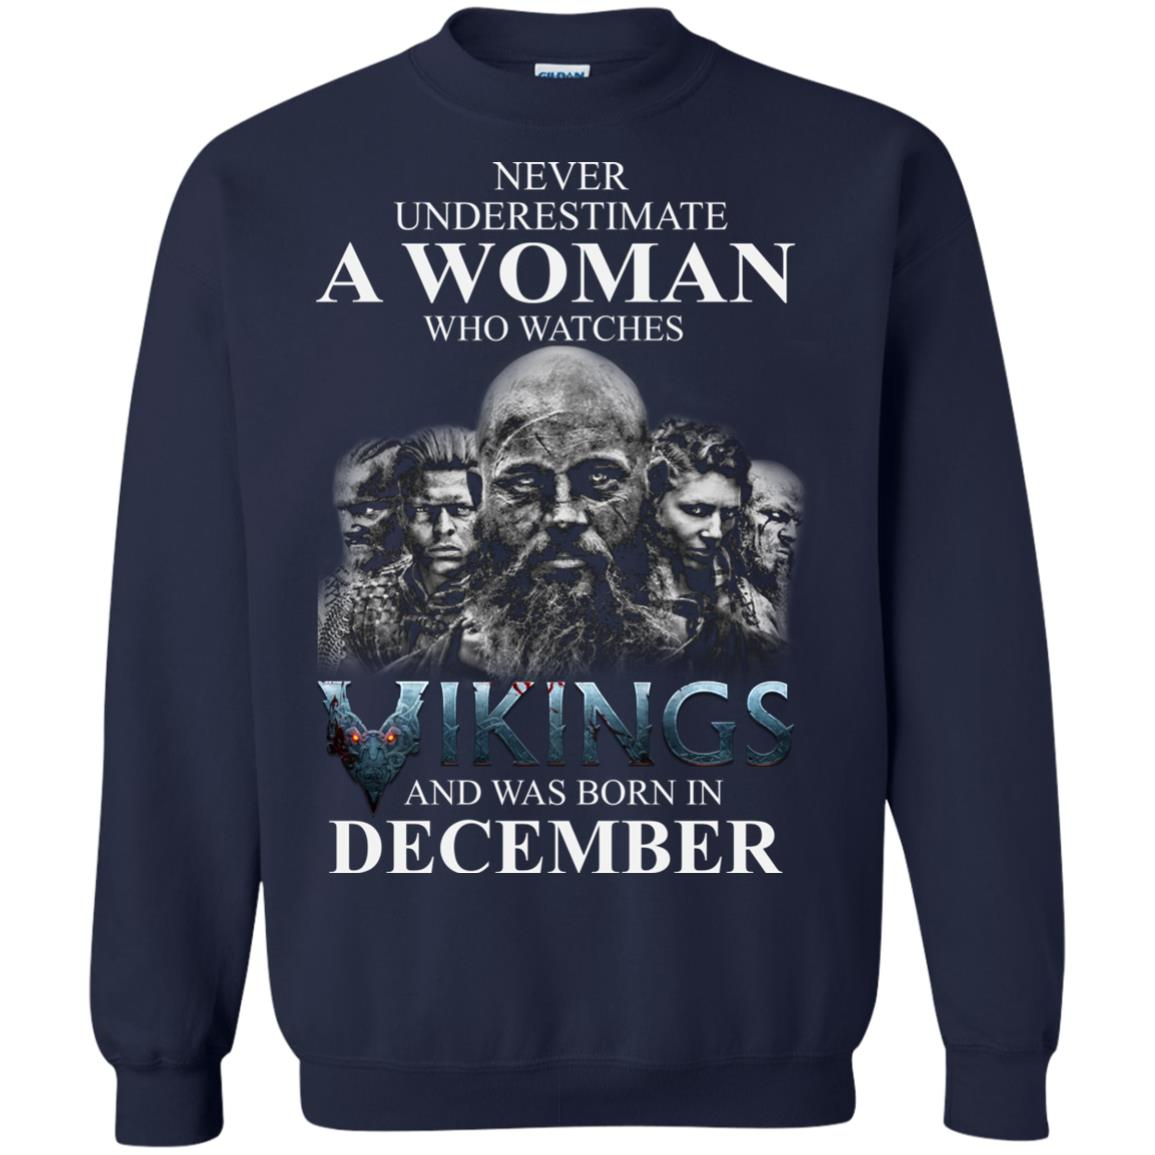 image 1226 - Never Underestimate A woman who watches Vikings and was born in December shirt